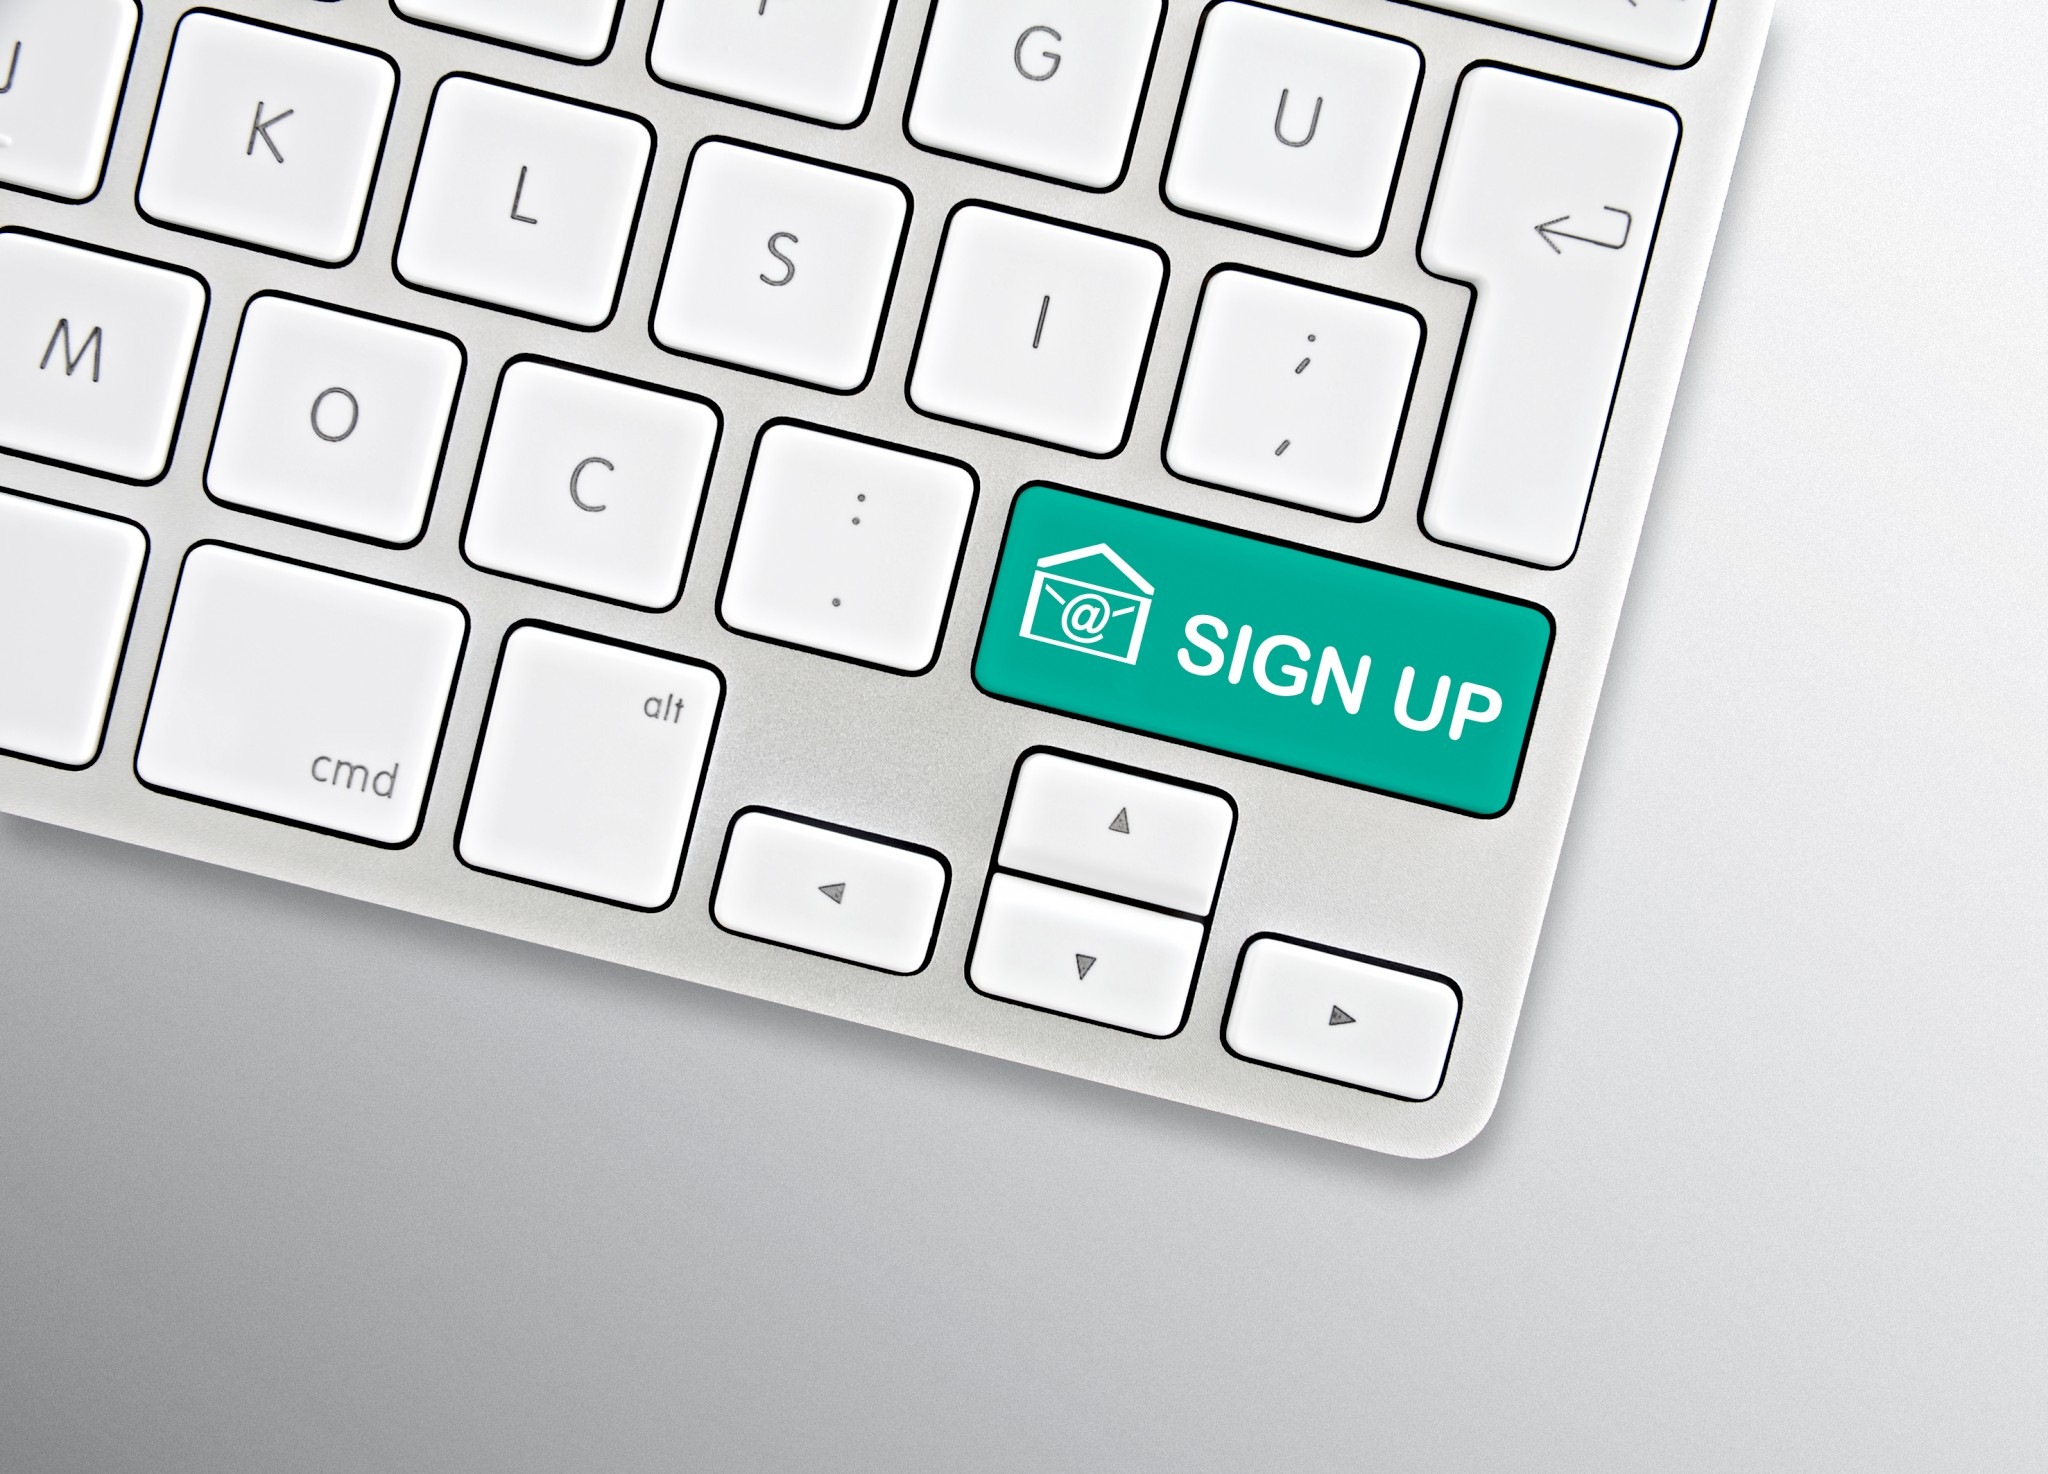 Sign up for emails icon shown on a key on a computer keyboard